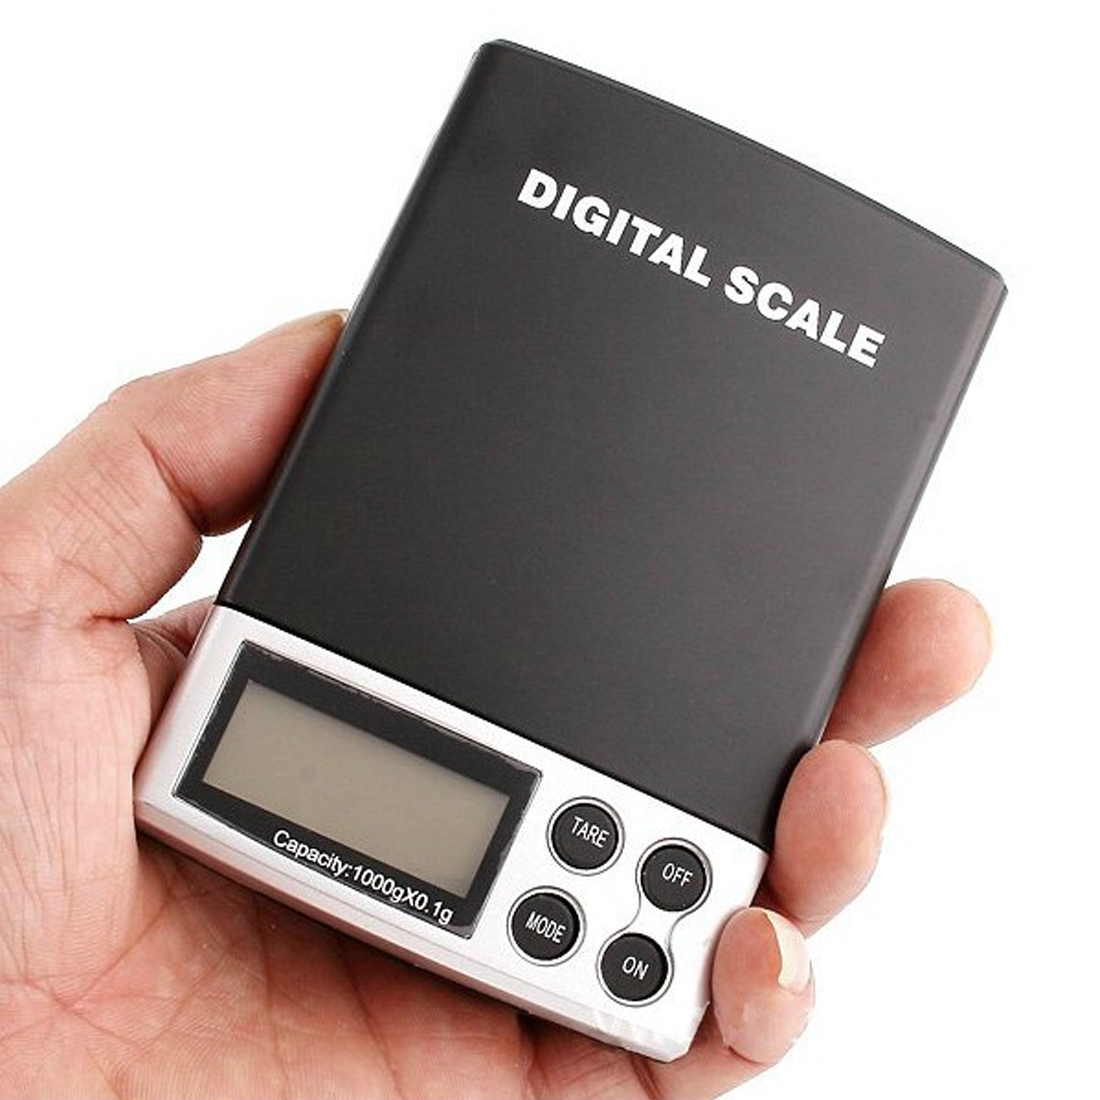 Weighing Kitchen Scale Holiday Sale 2000gx0.1g Pocket Electronic Digital Jewelry Scale Grams Balance LCD DisplayWeighing Kitchen Scale Holiday Sale 2000gx0.1g Pocket Electronic Digital Jewelry Scale Grams Balance LCD Display